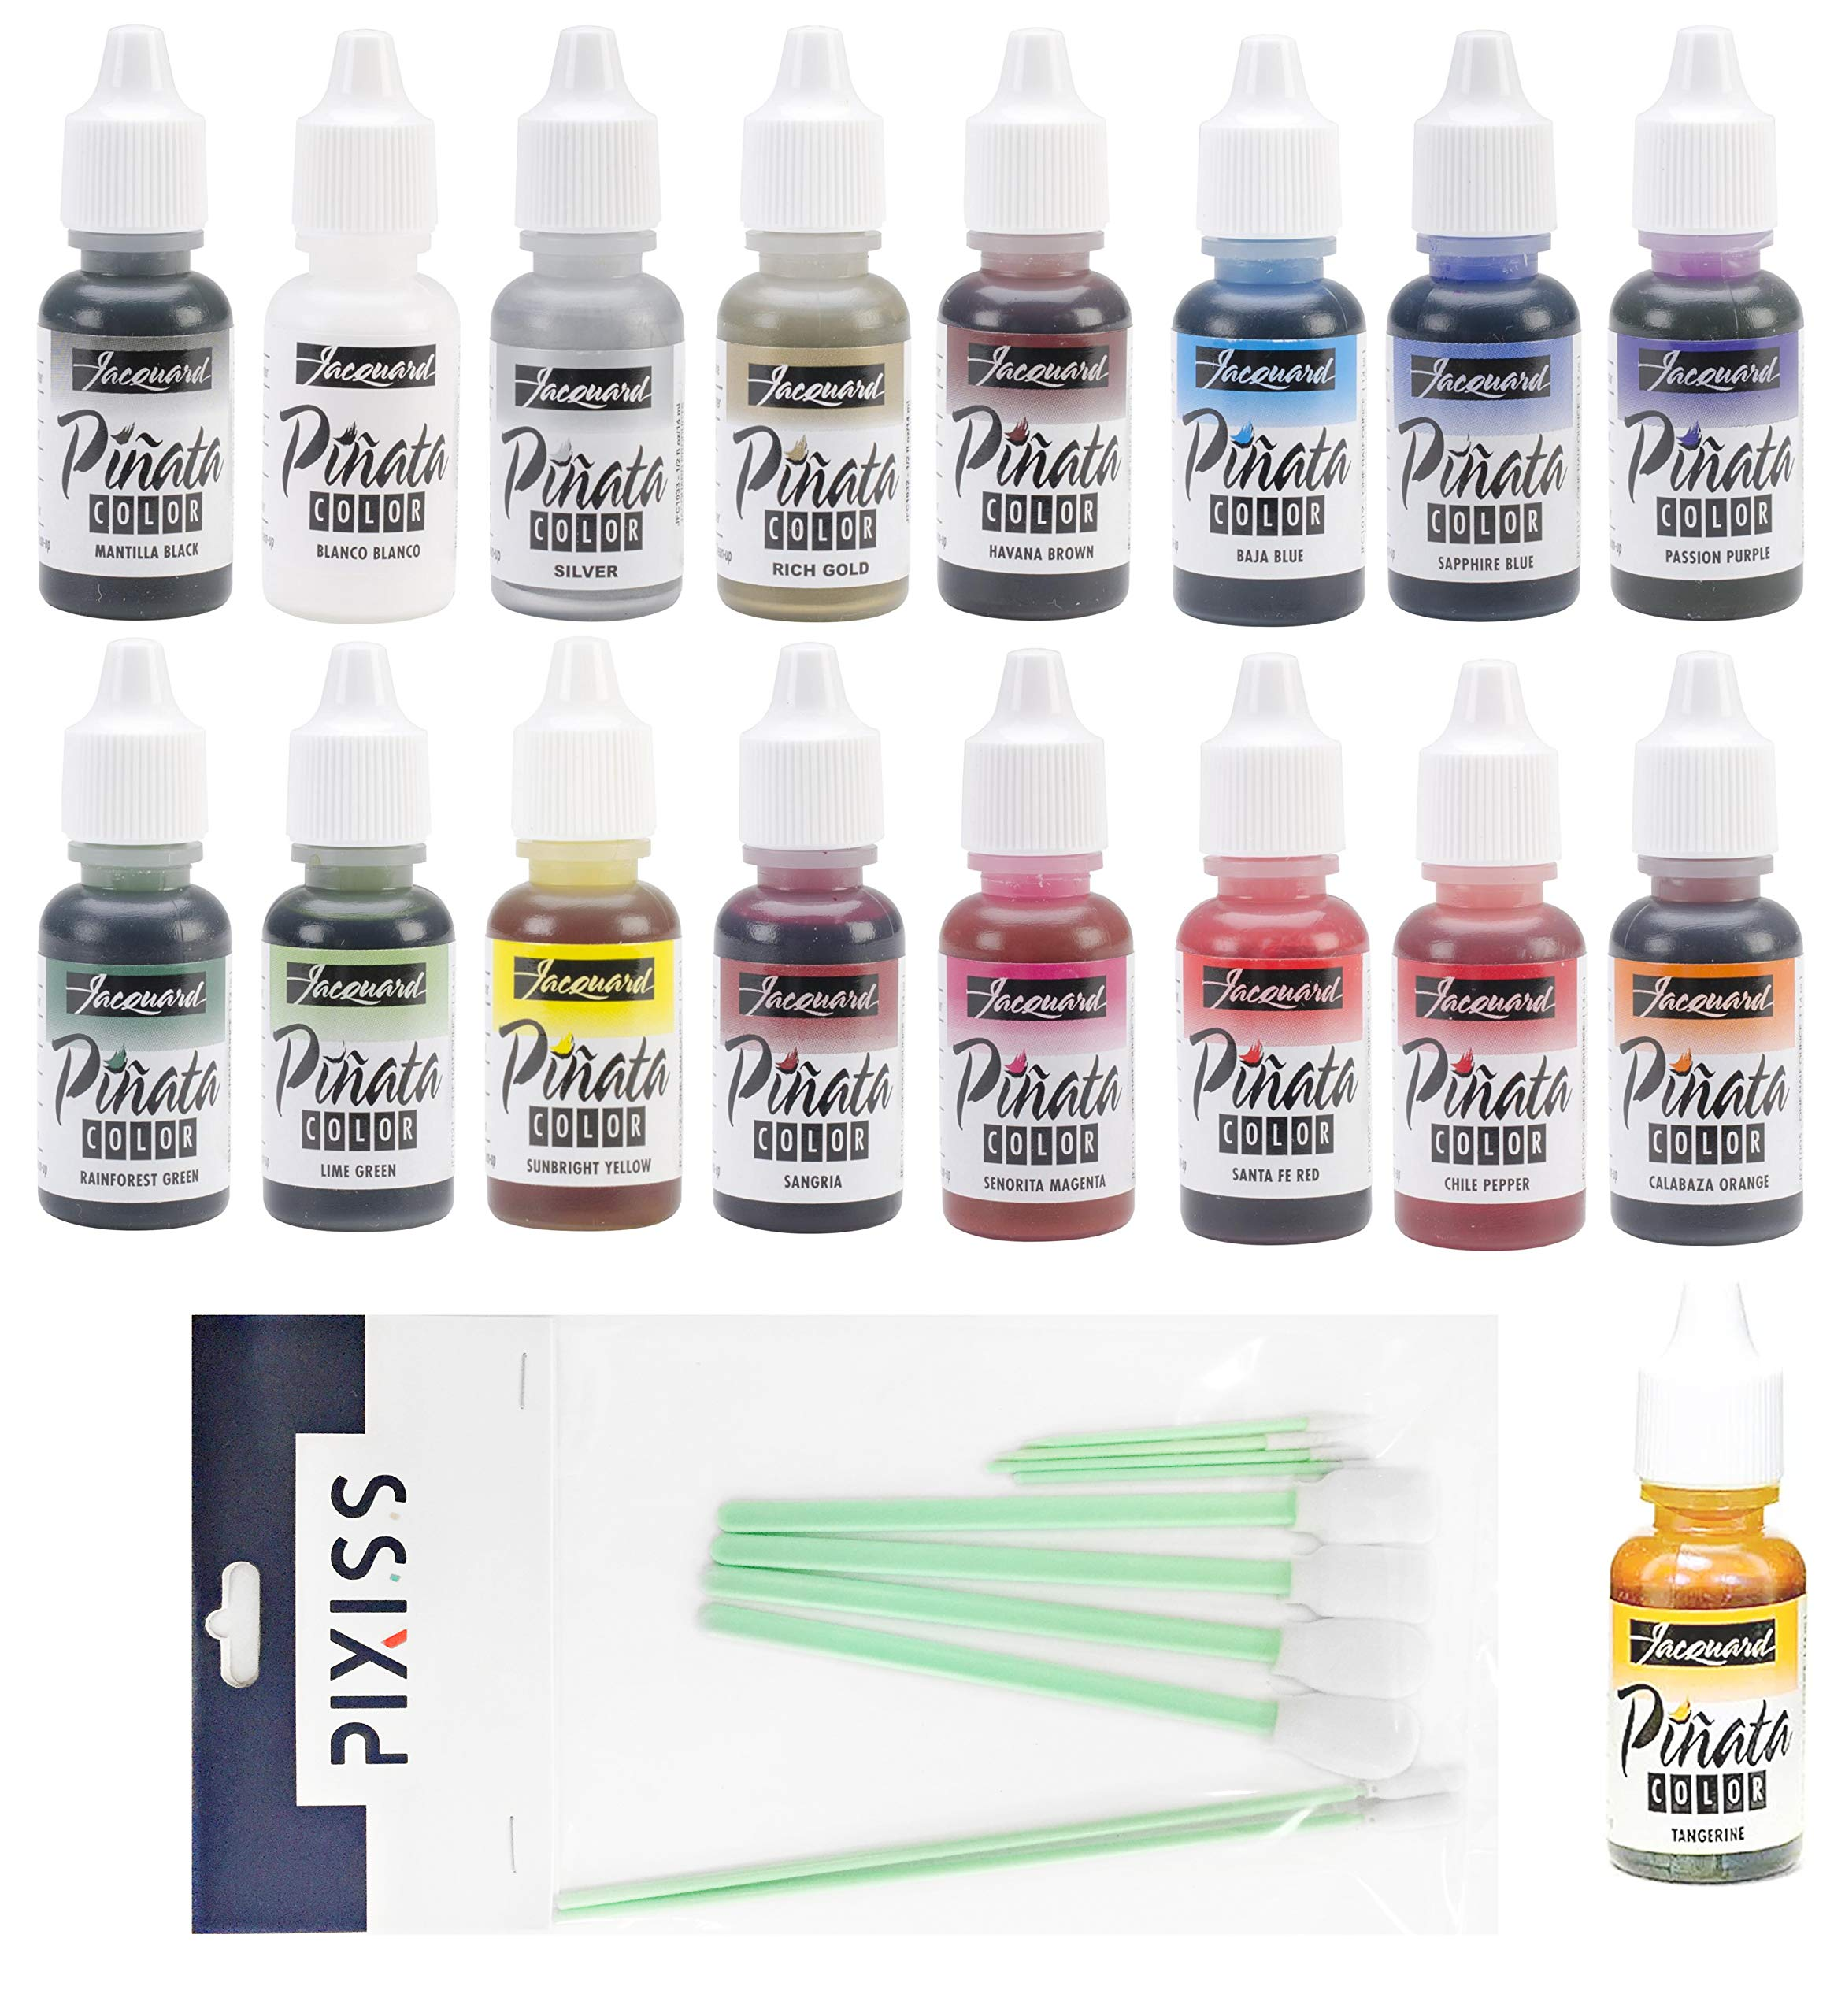 All 17 Colors Jacquard Pinata Alcohol Inks Bundle and 10x Pixiss Ink Blending Tools by GrandProducts